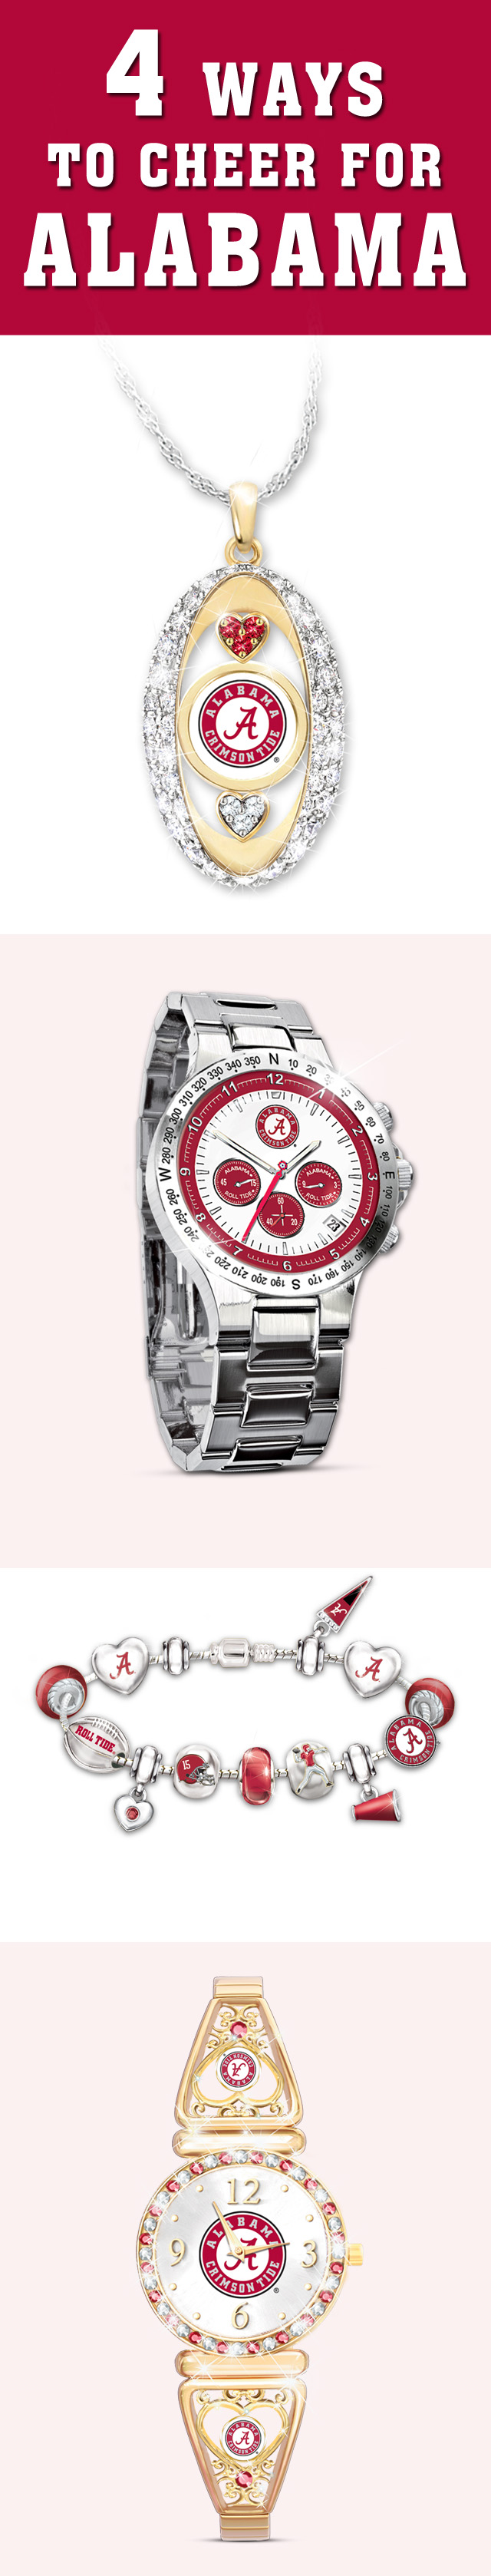 Are-you-loyal-to-the-Crimson-Tide-We-offer-a-winning-selection-of-officially-licensed-jewelry-and-c-wallpaper-wp4003097